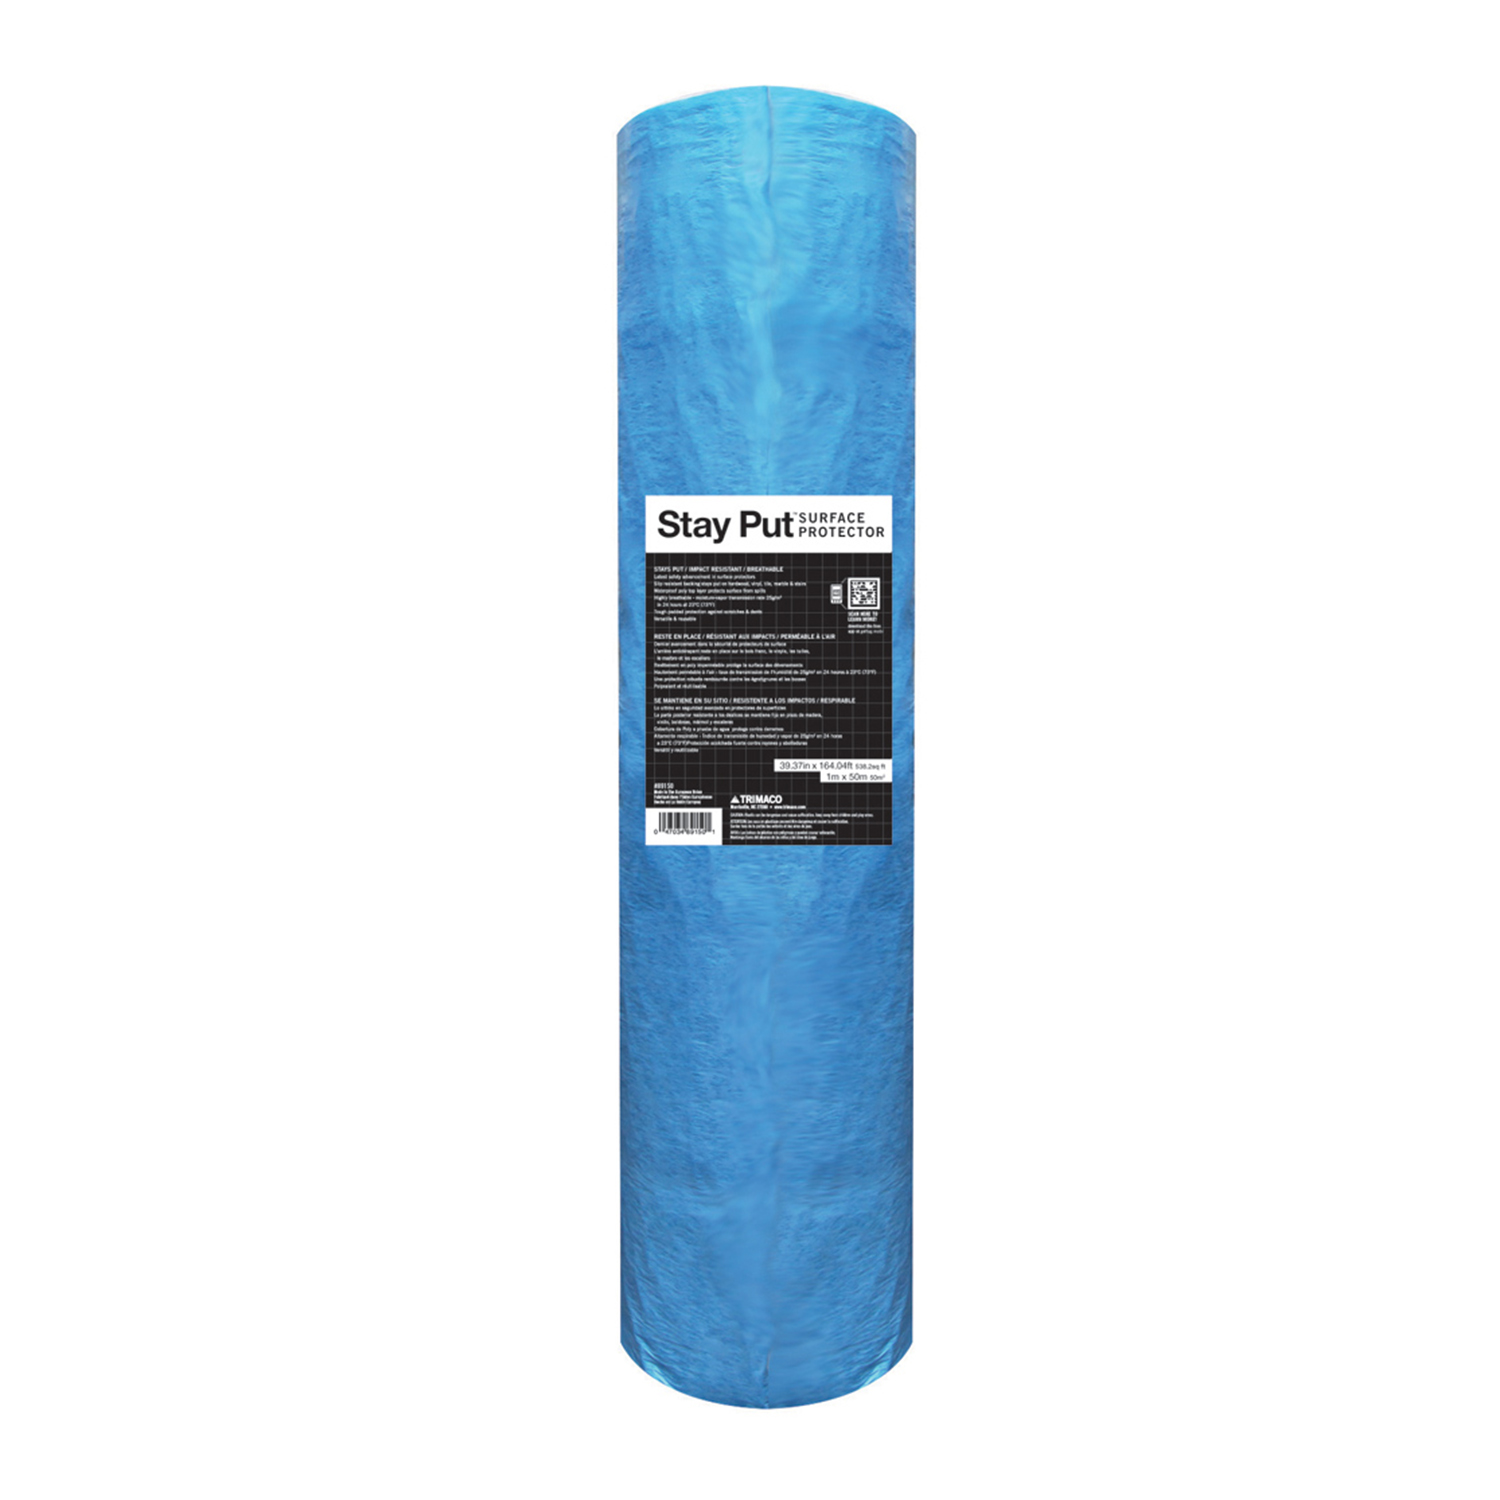 Trimaco Stay Put® Slip Resistant Padded Surface Protector, 39.37